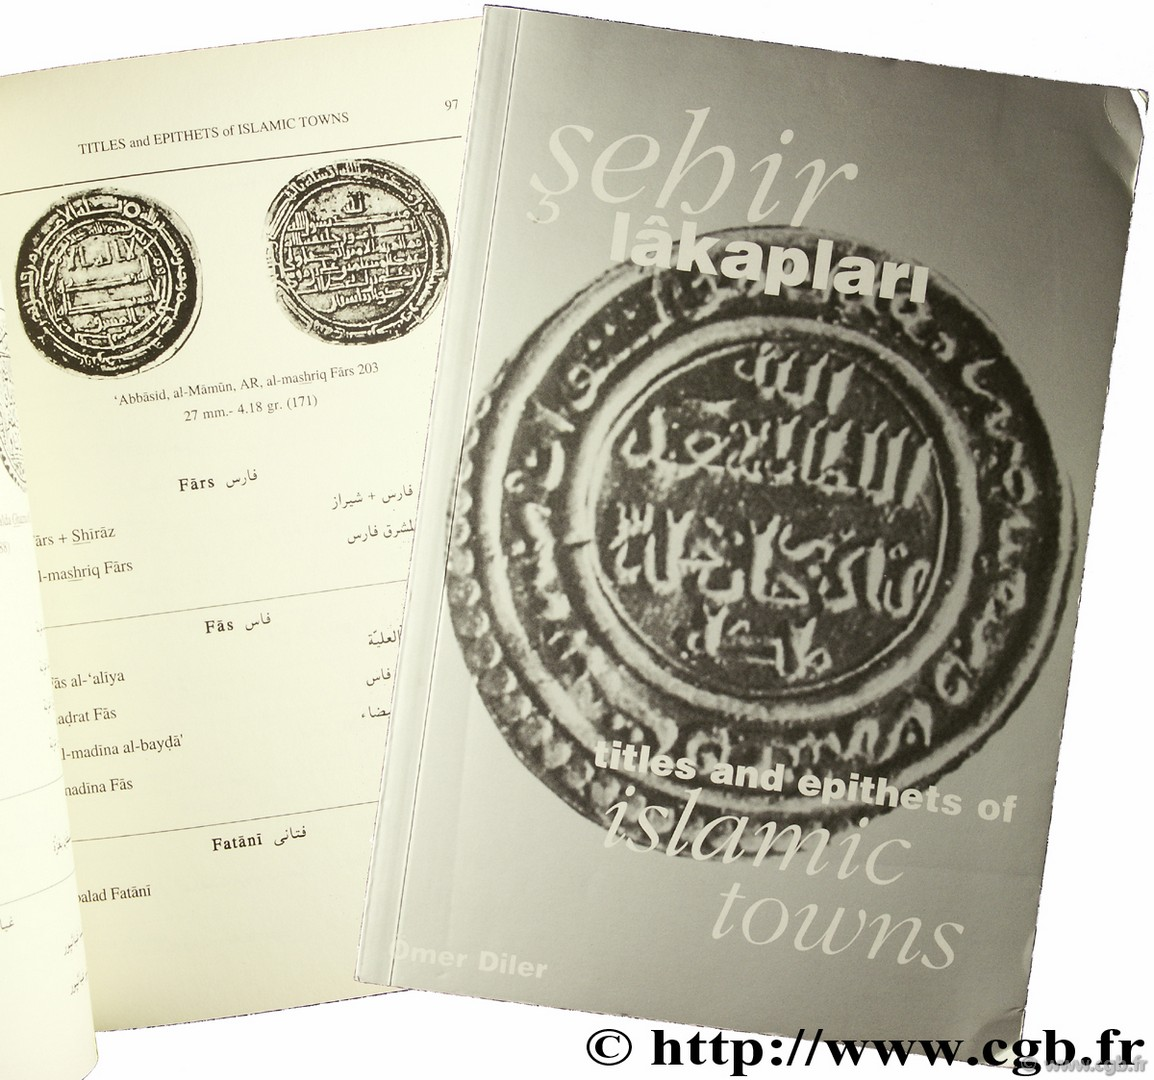 Titles and Epithets of Islamic Towns LÂKAPLARI S.